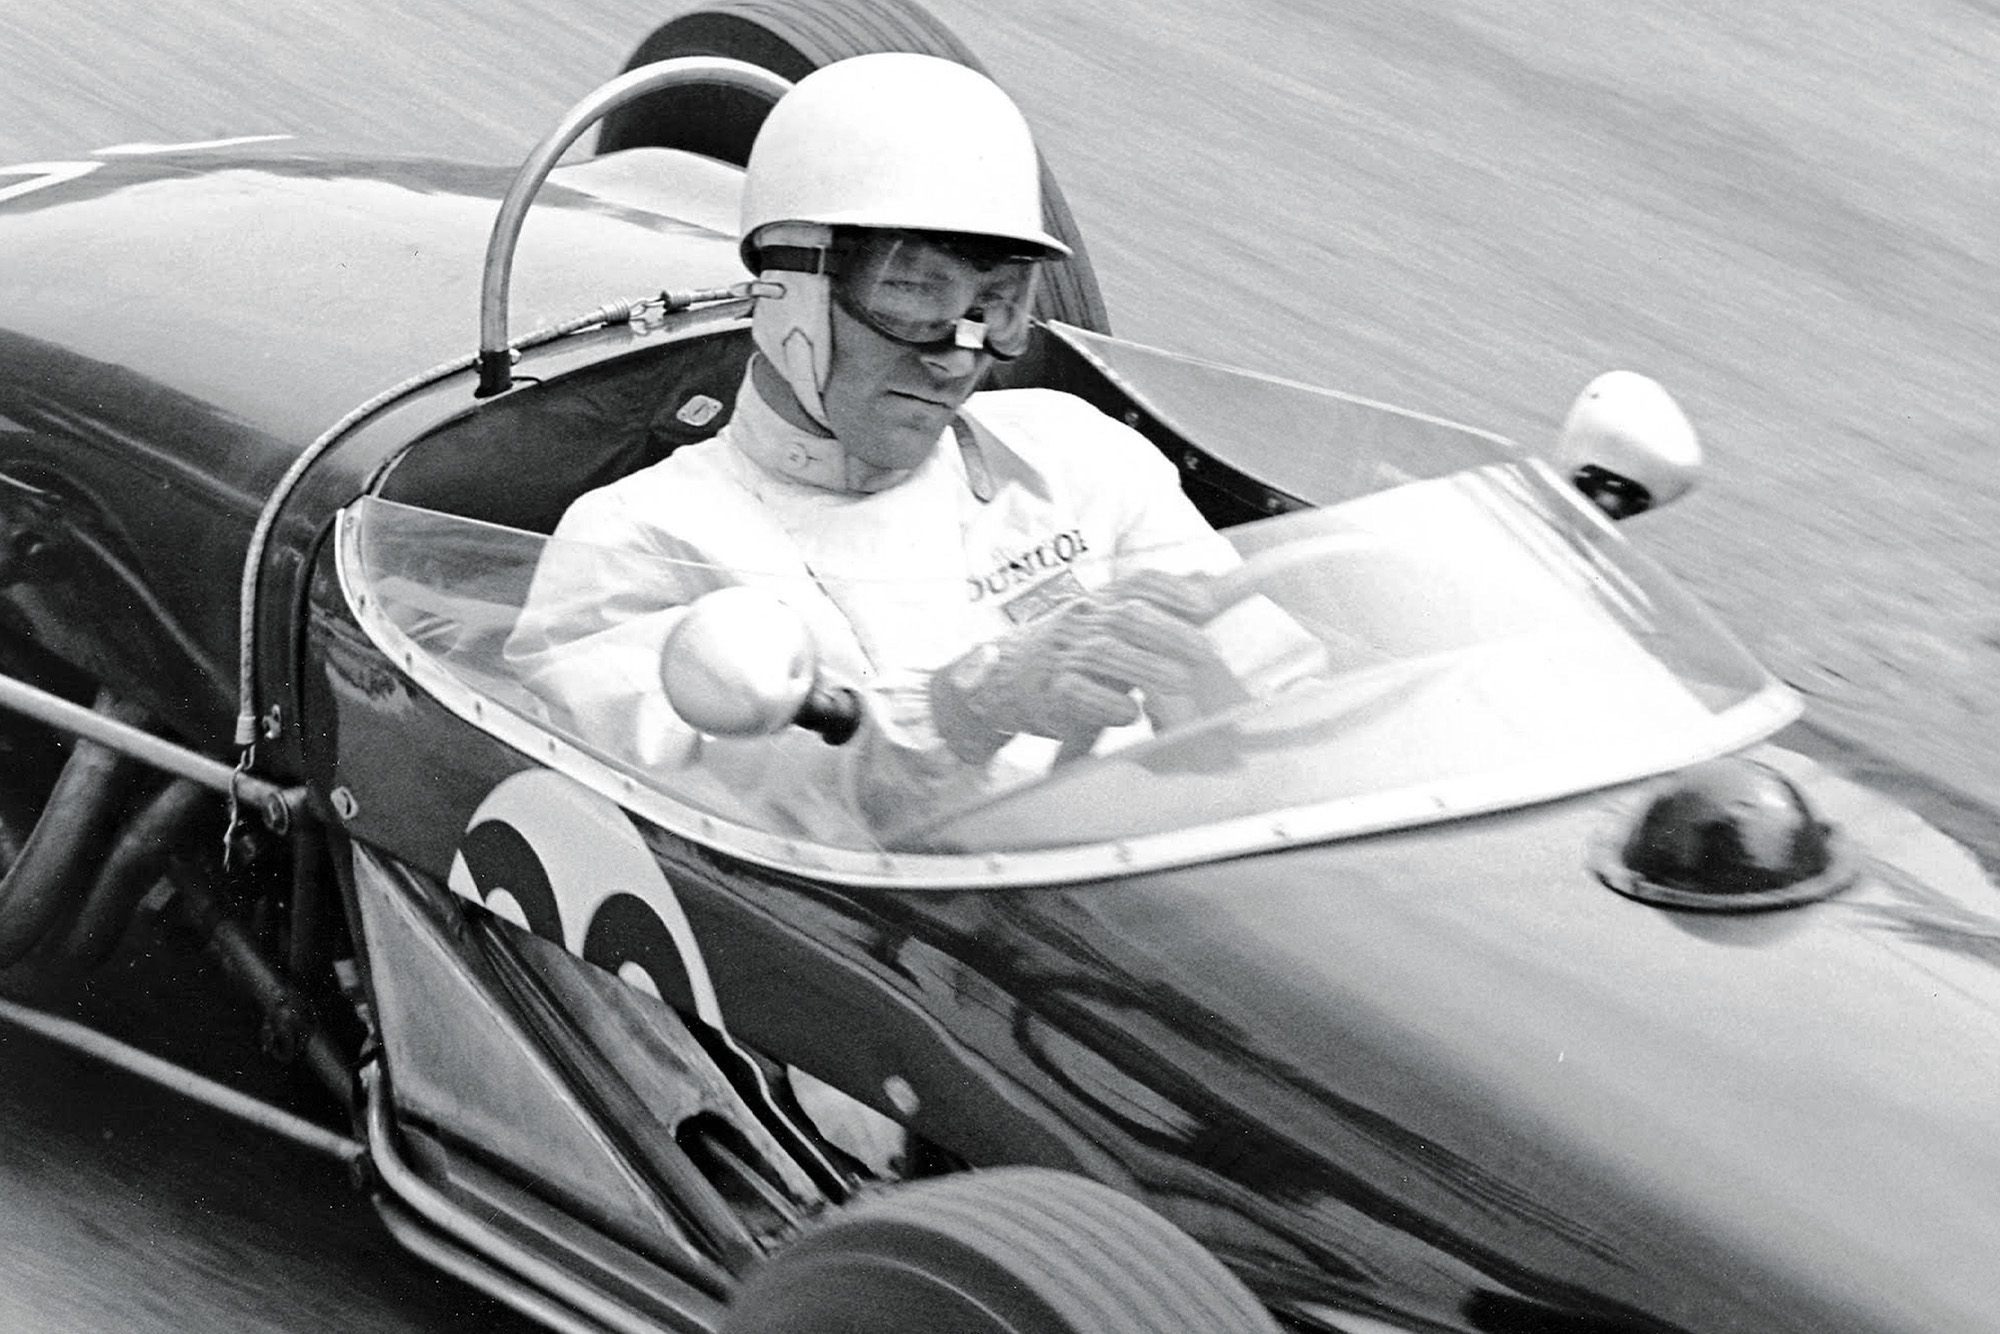 Stirling Moss close up during the 1961 Monaco Grand Prix